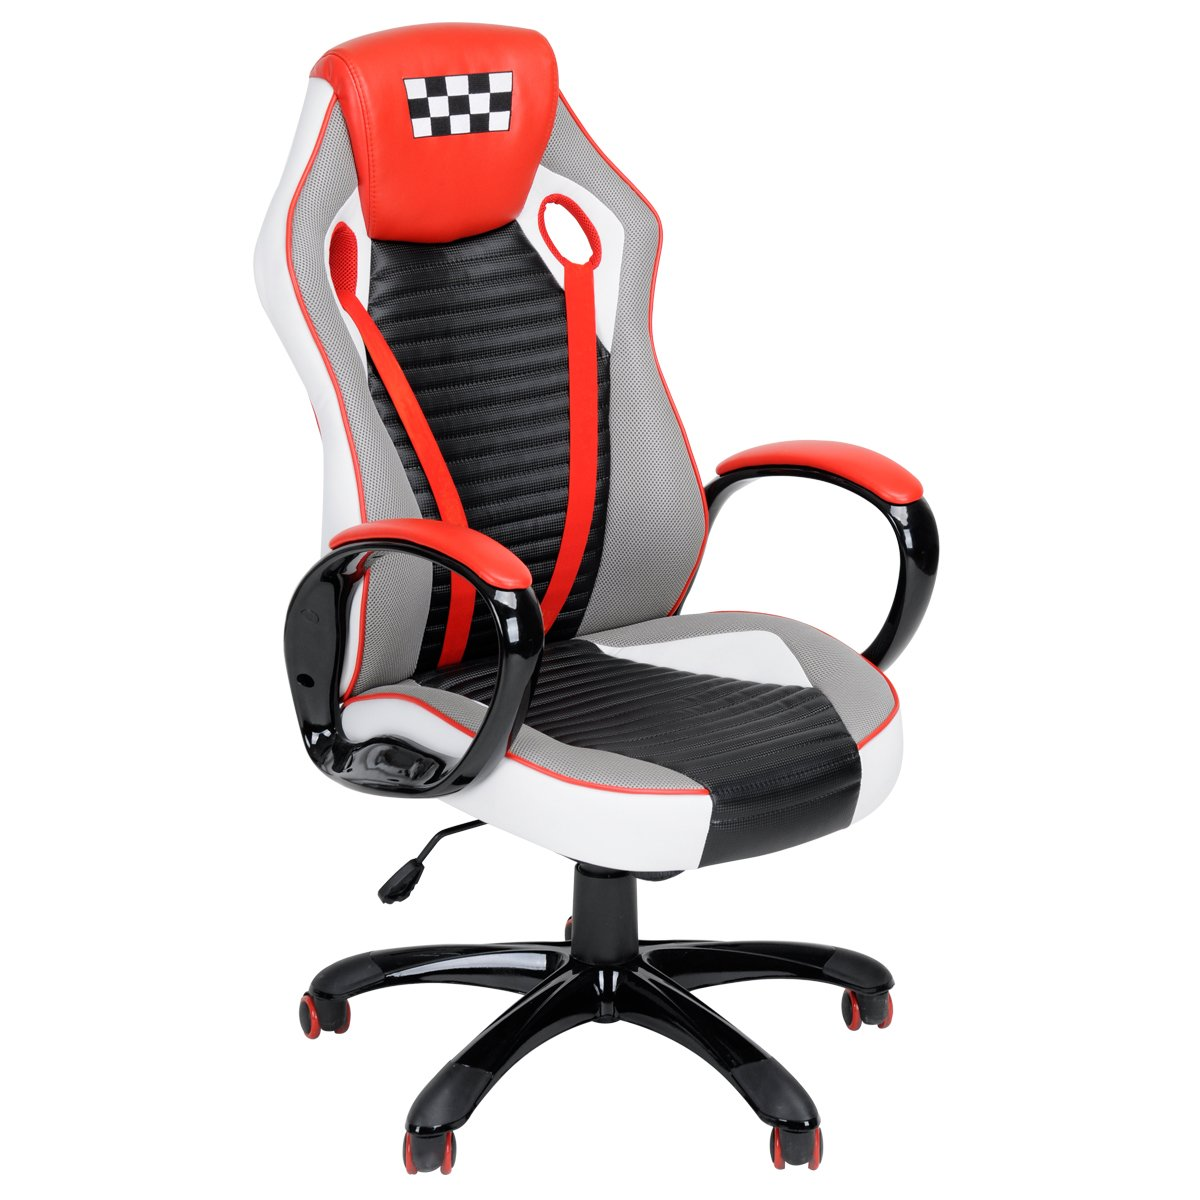 Homycasa Home Office Decorations Furniture, Ergonomic Computer Seat Faux Leather Office Racing Desk Chair (RED 2)